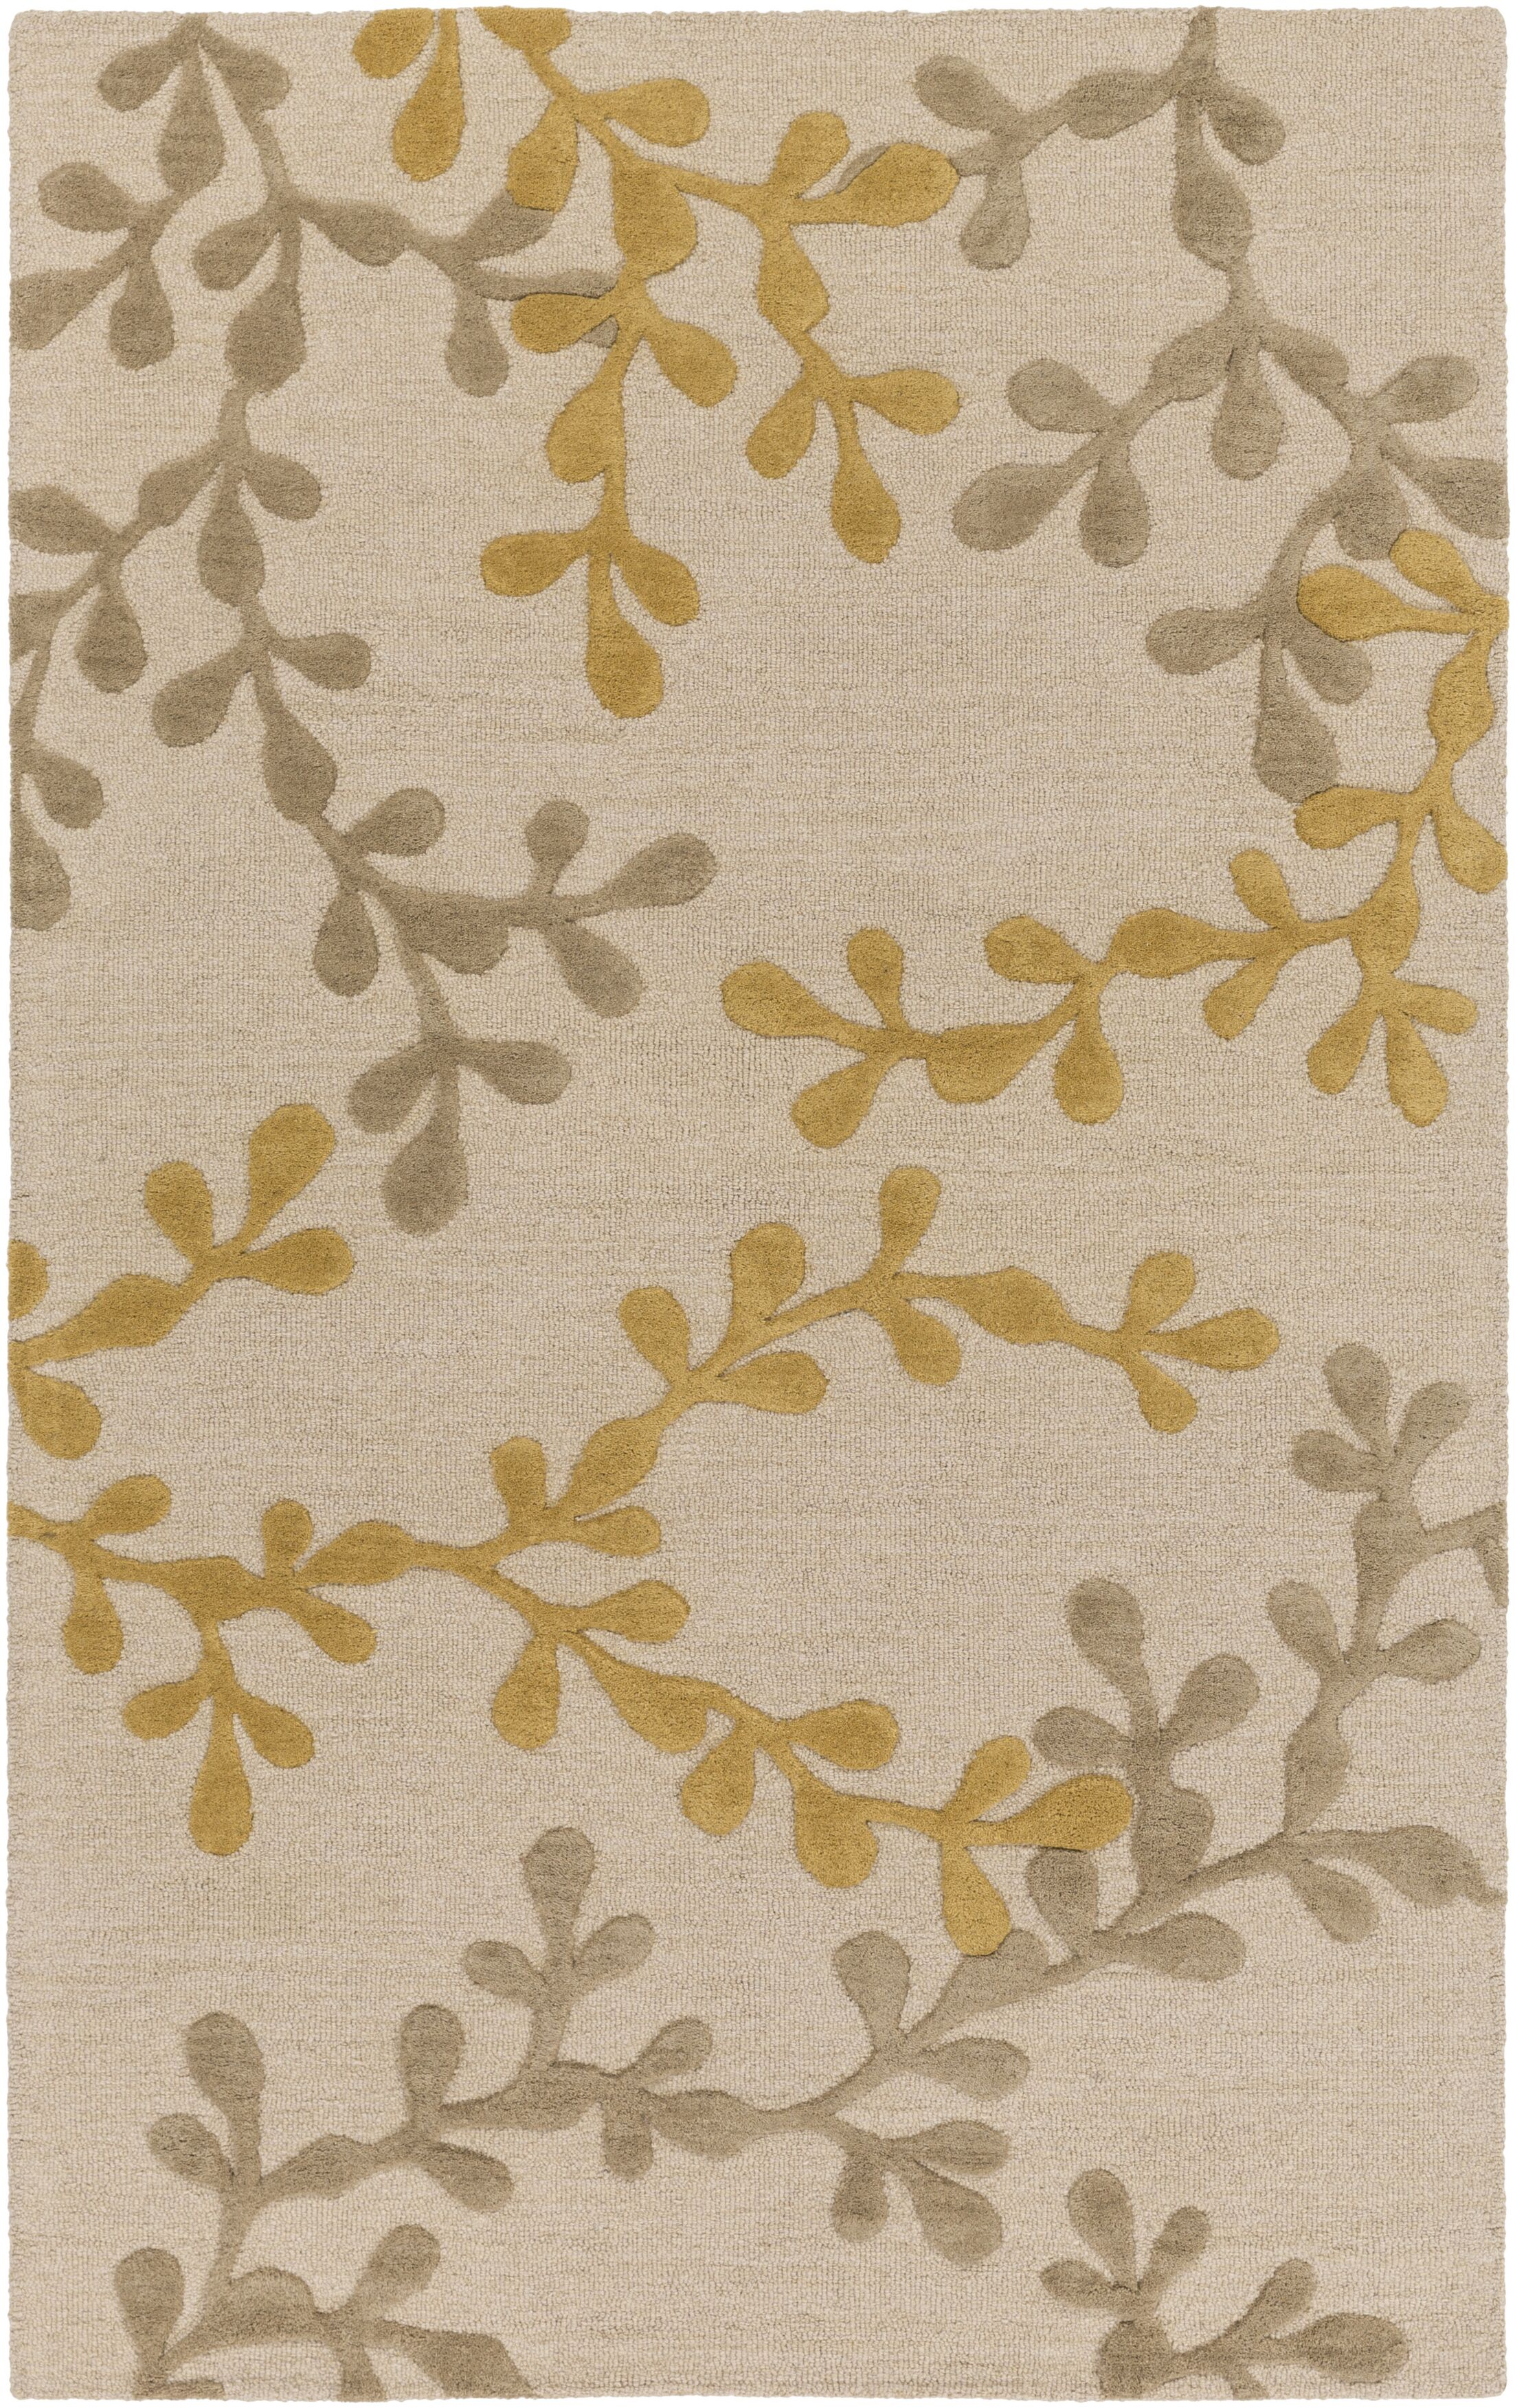 Coutu Hand-Tufted Beige/Gold Area Rug Rug Size: Rectangle 5' x 8'